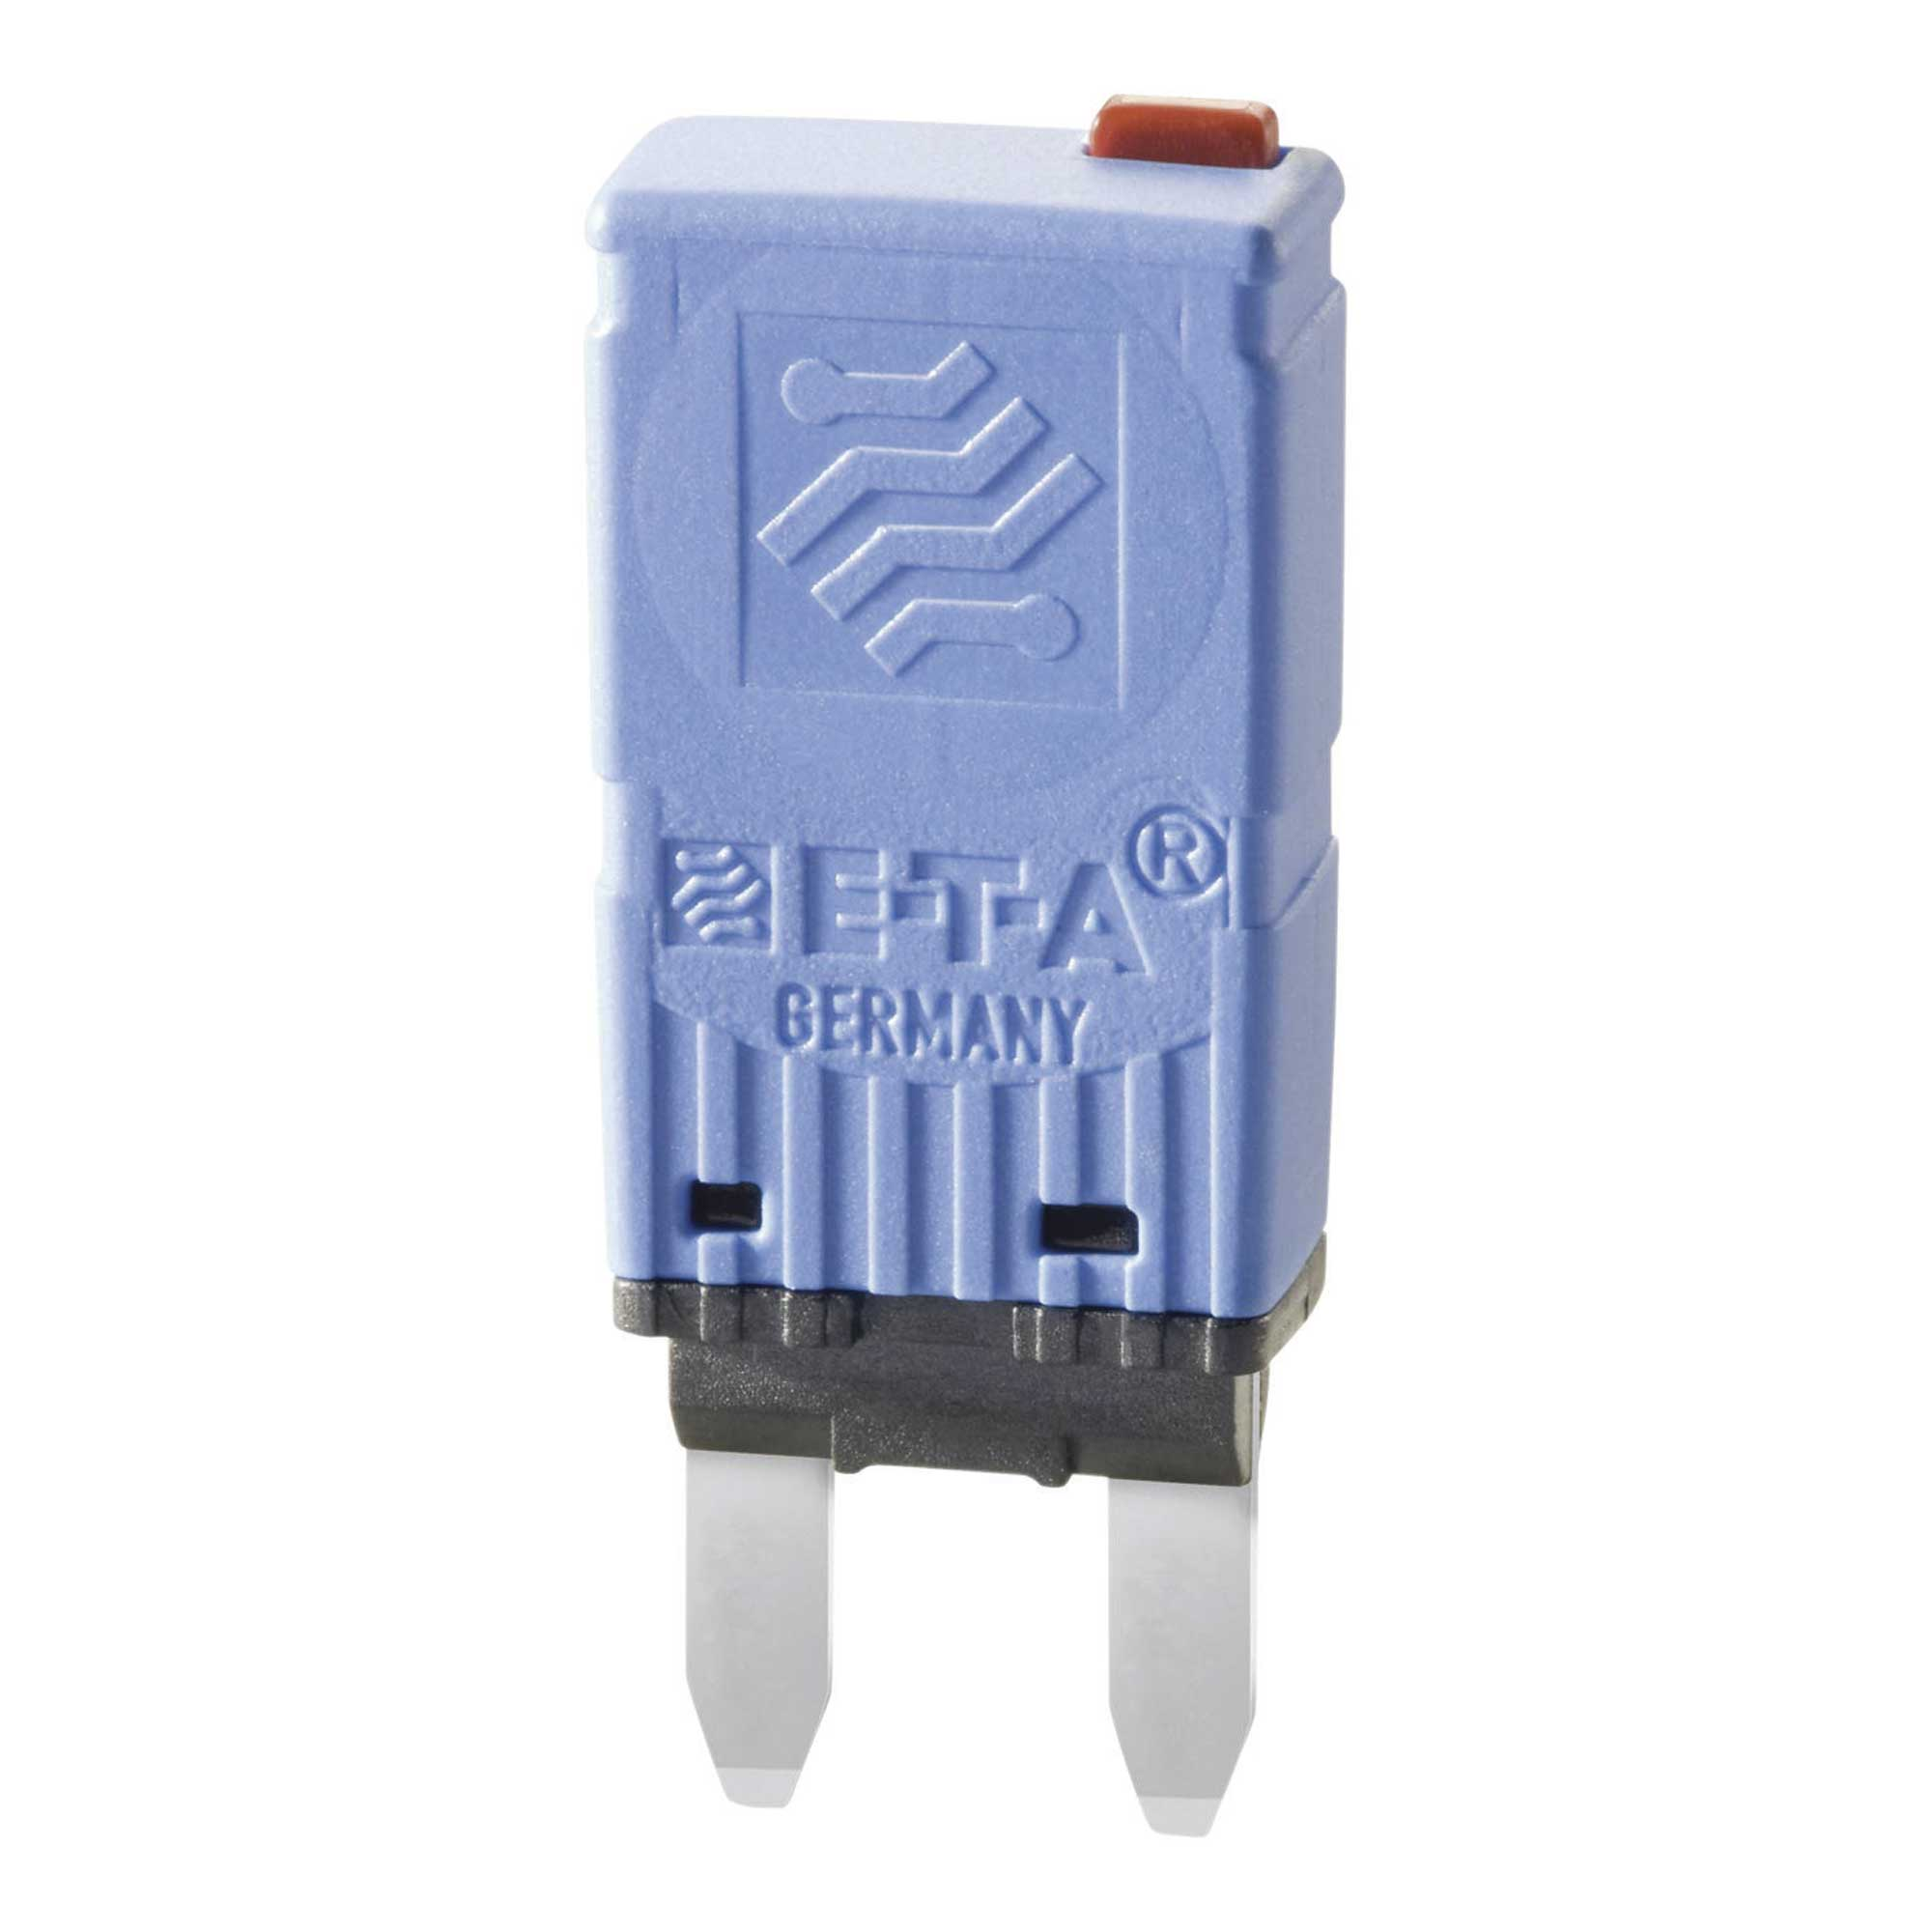 hight resolution of details about eta 1620 3 series single point circuit breaker mini fuse fitment 15amp race